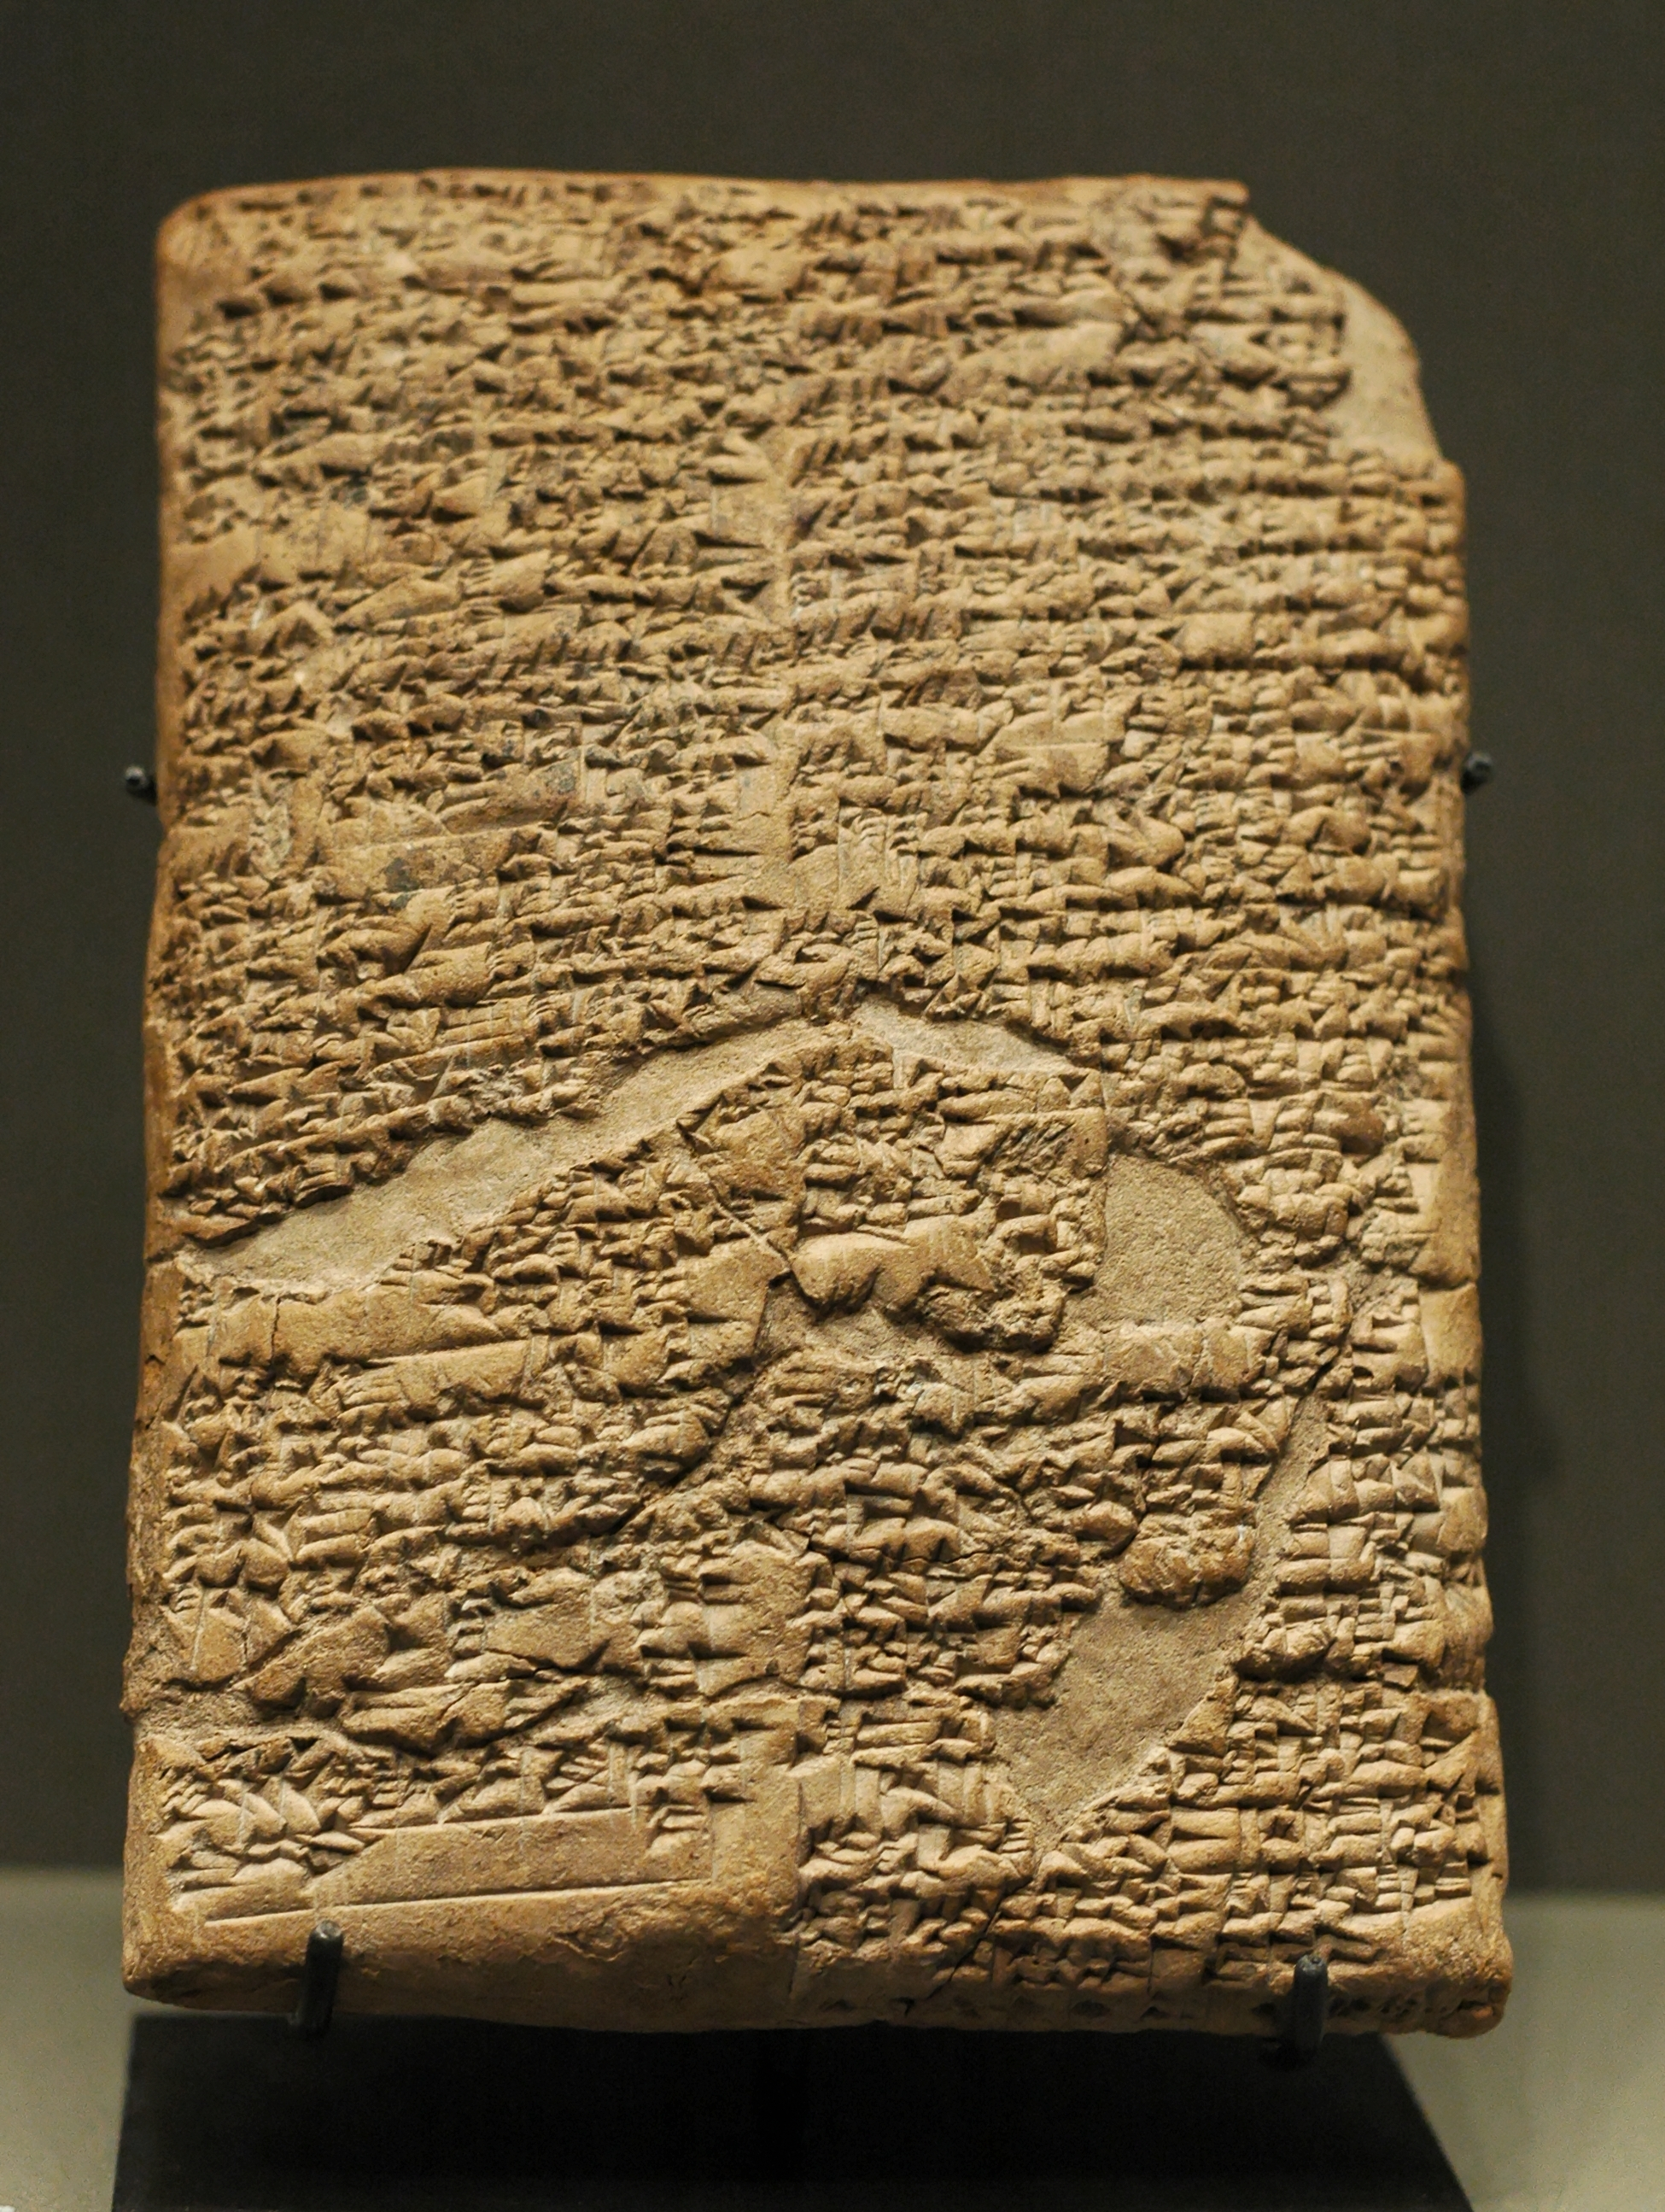 https://i2.wp.com/upload.wikimedia.org/wikipedia/commons/e/e8/Prologue_Hammurabi_Code_Louvre_AO10237.jpg